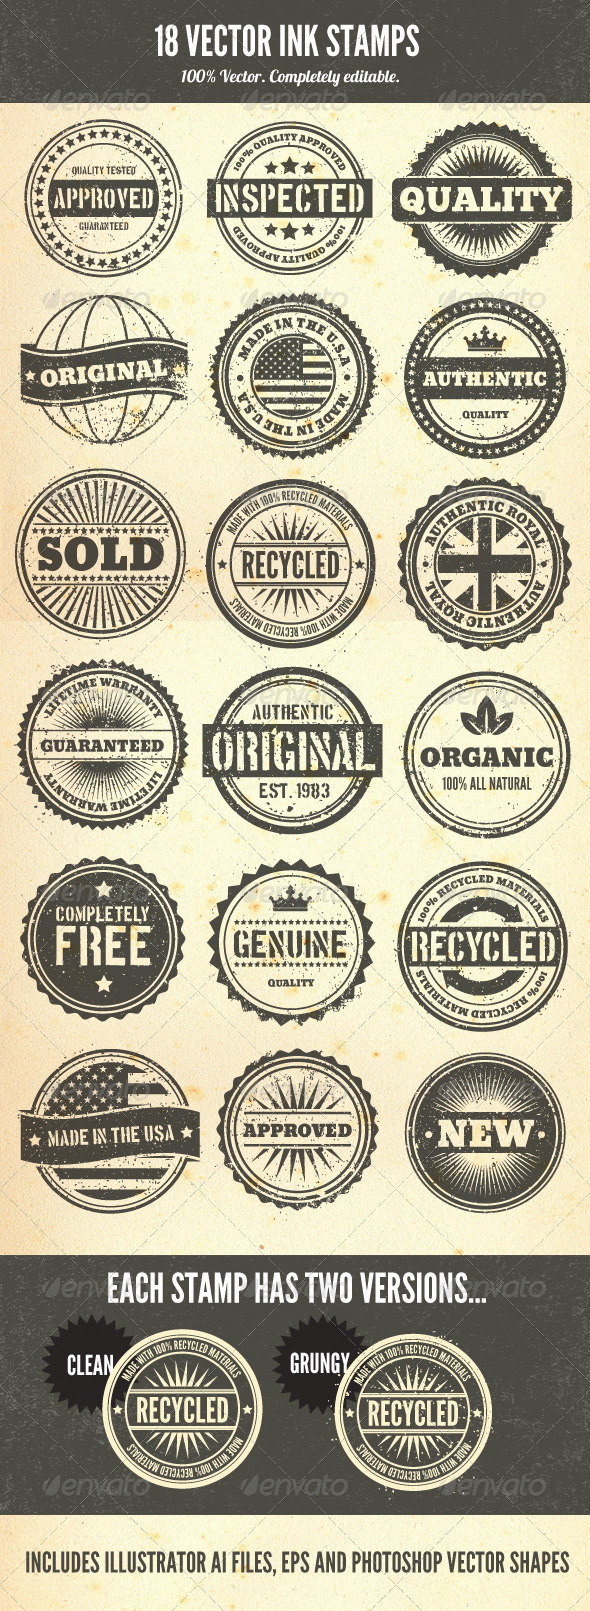 of vectors includes 18 unique rubber stamp style badges. Each stamp ...